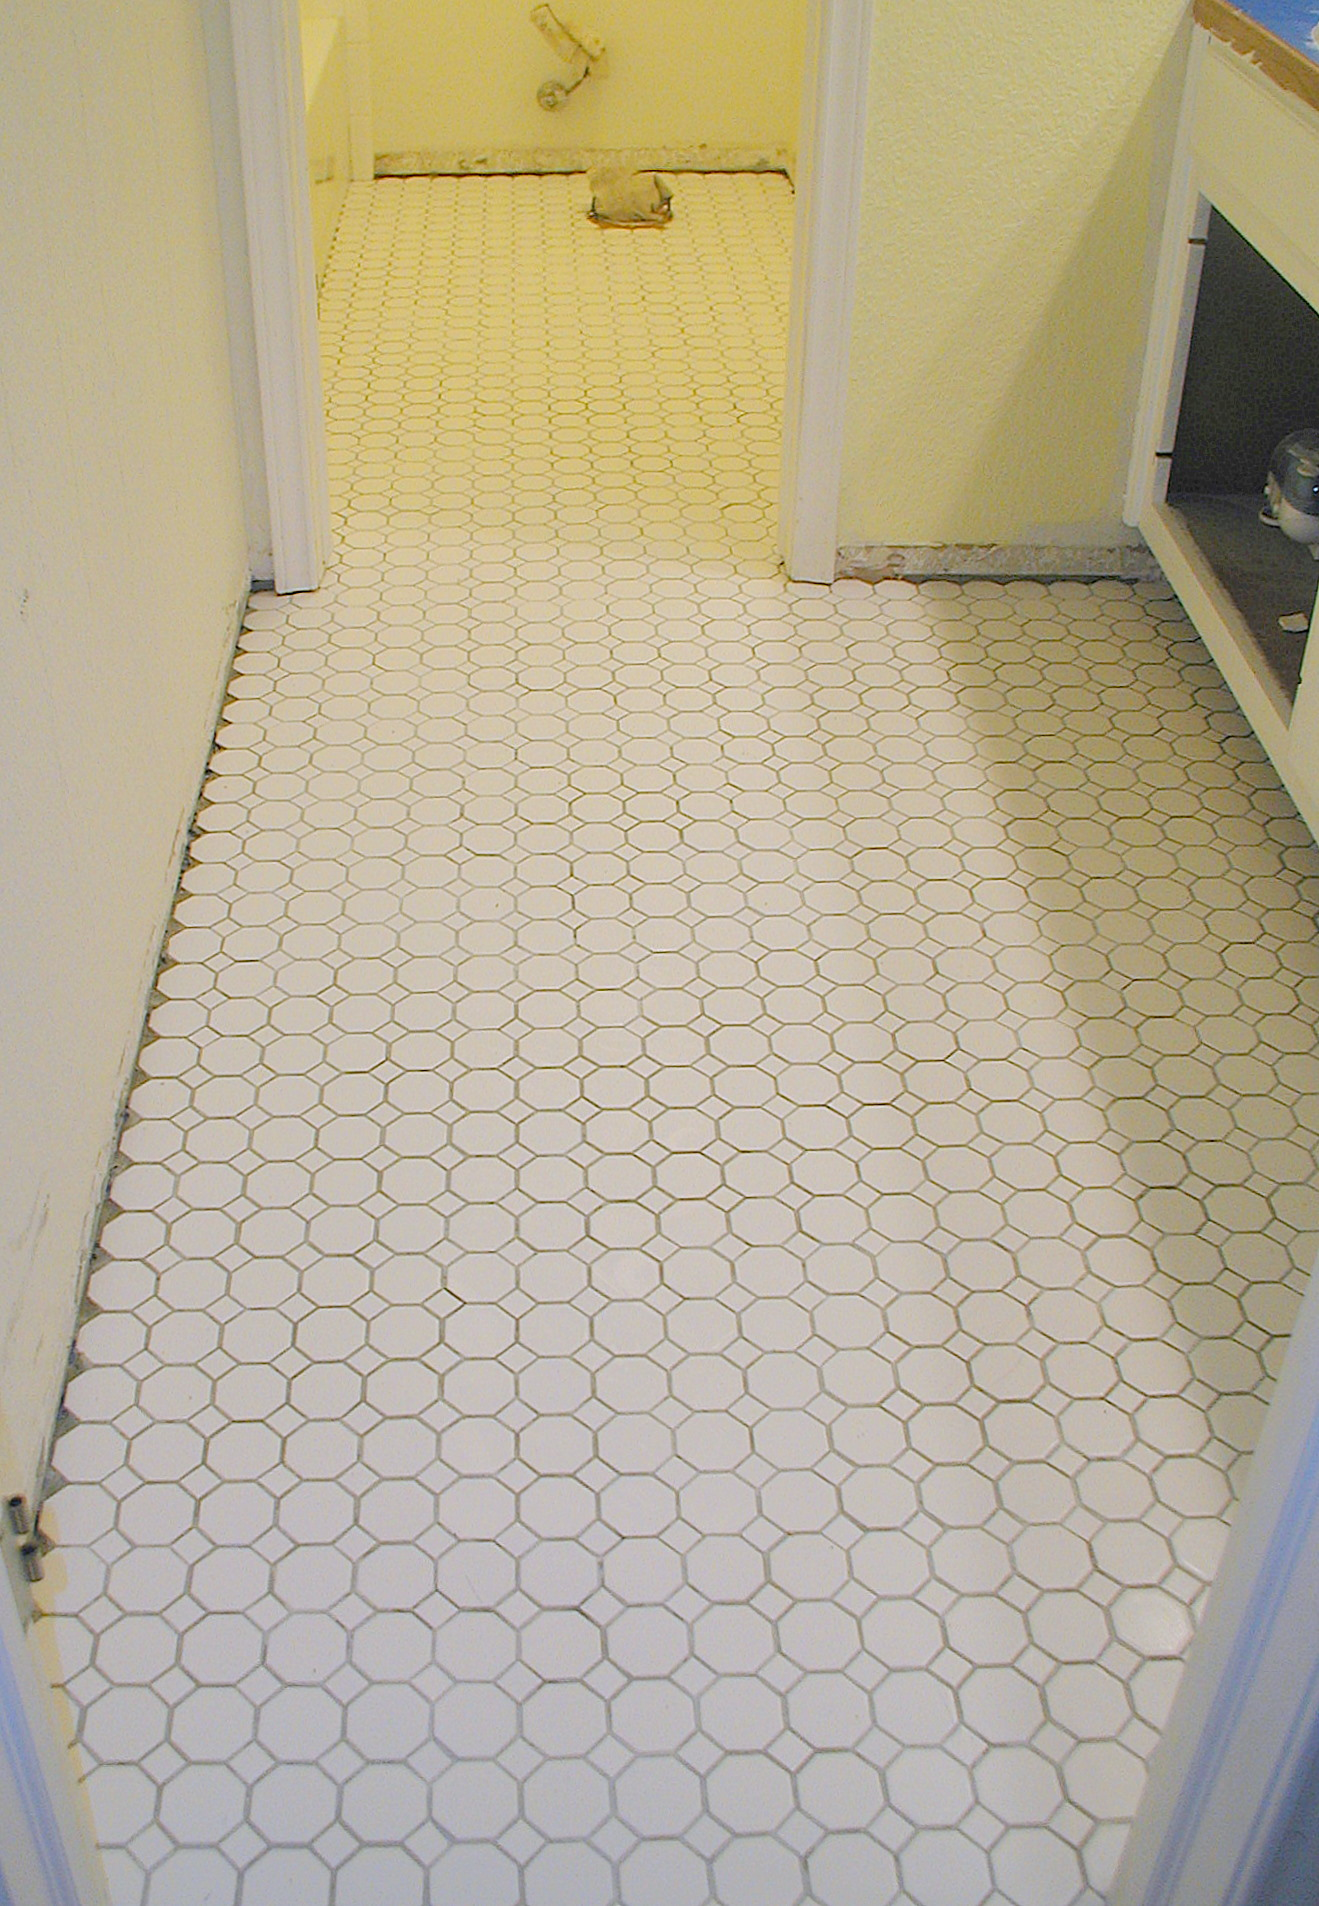 301 moved permanently Bathroom flooring tile